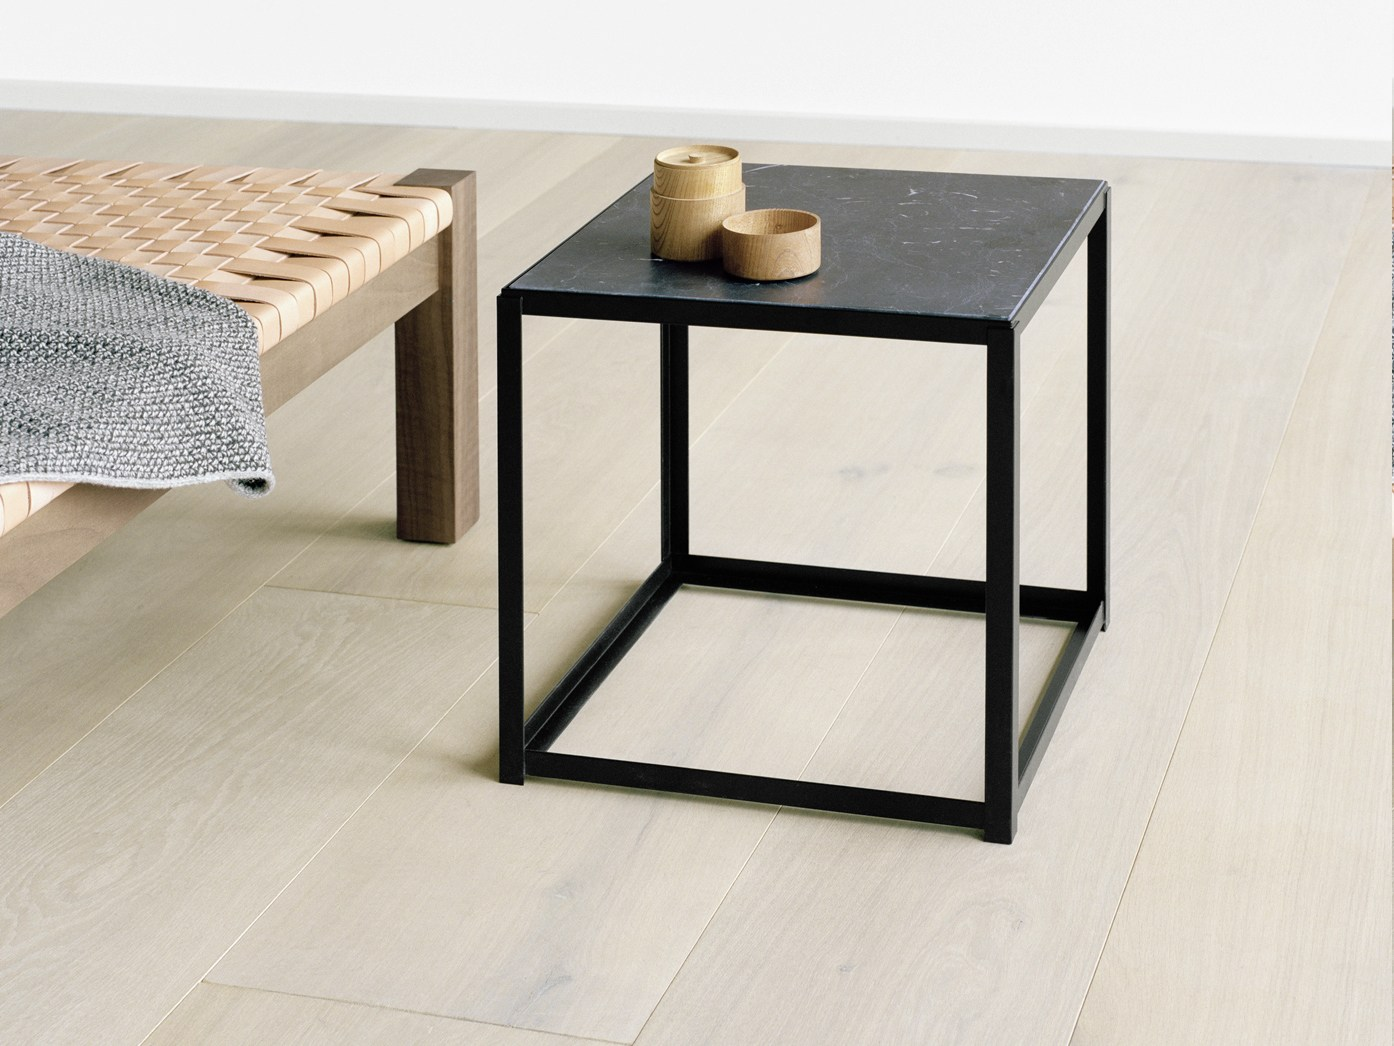 Stackable Steel Coffee Table Fortyforty By E15 Design Ferdinand Kramer